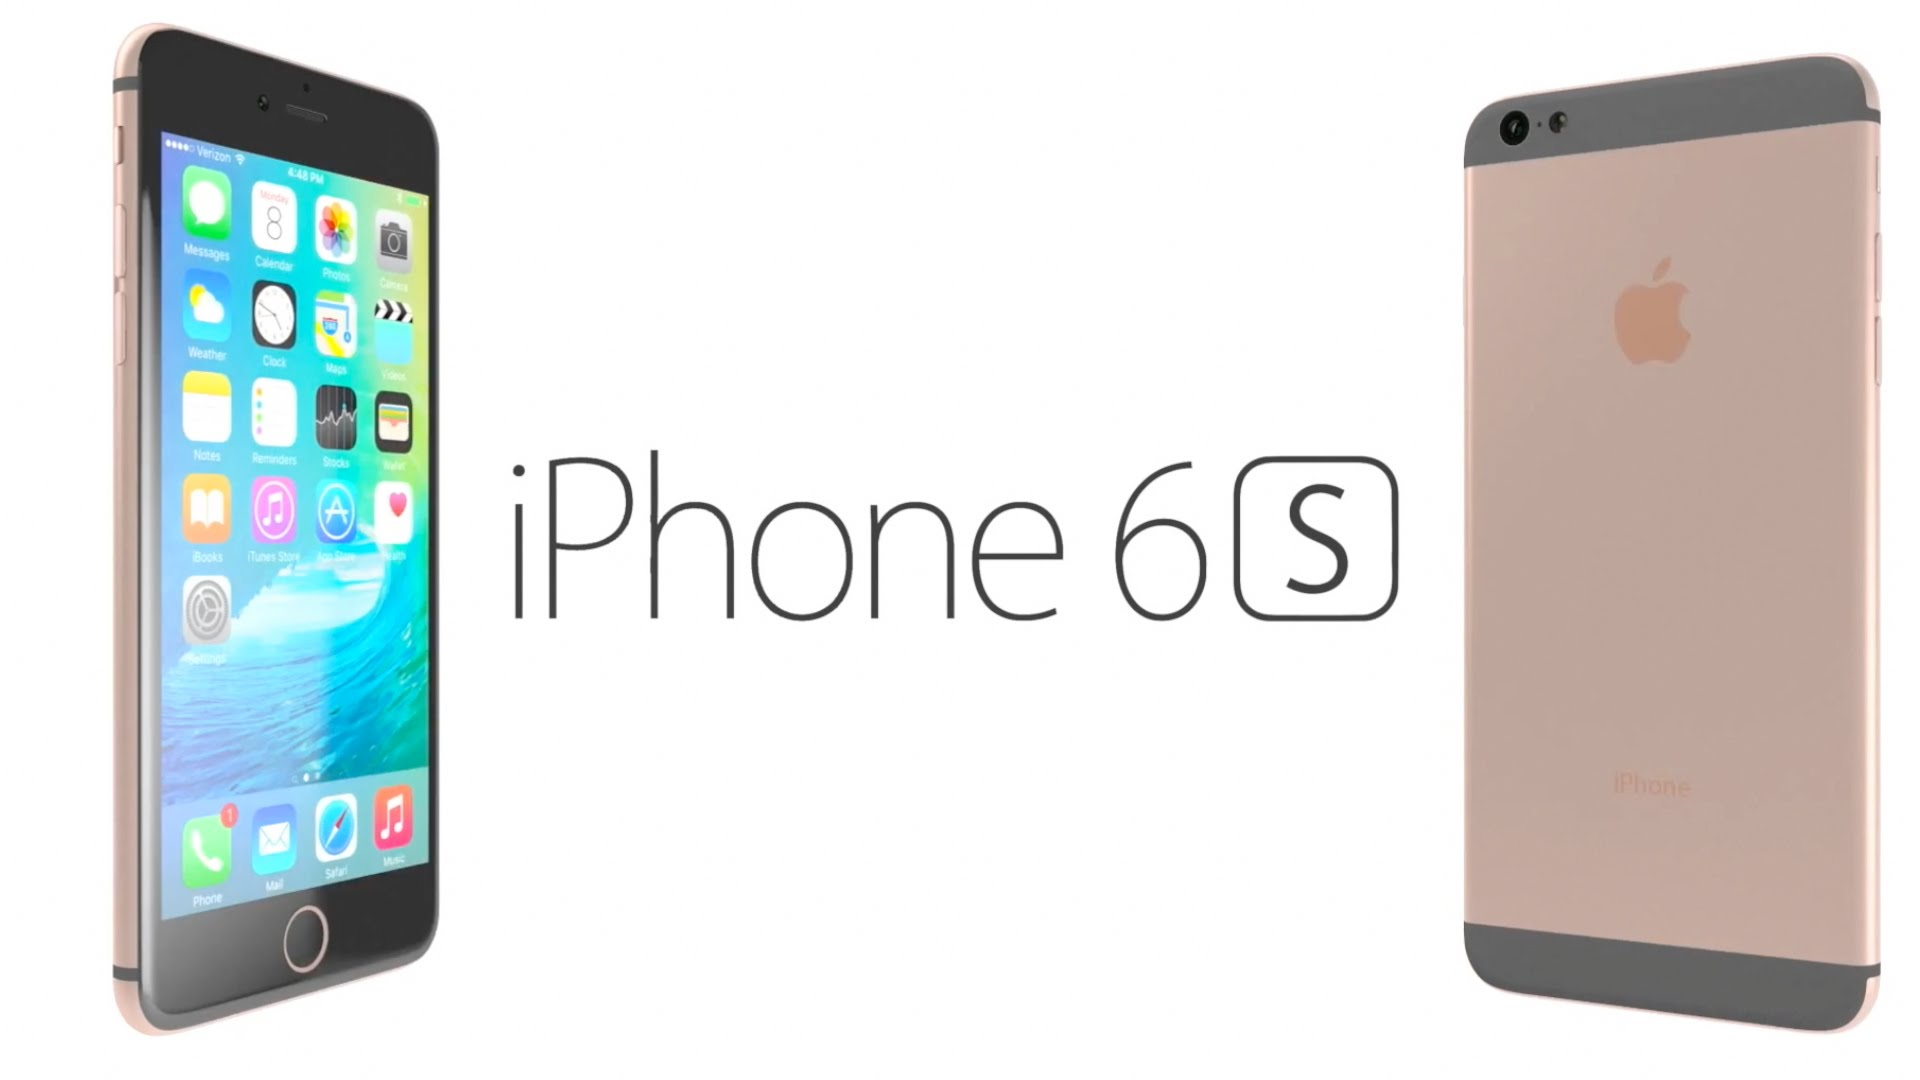 new apple iphone 6s apple iphone 6s what s new geekpeek net 15743